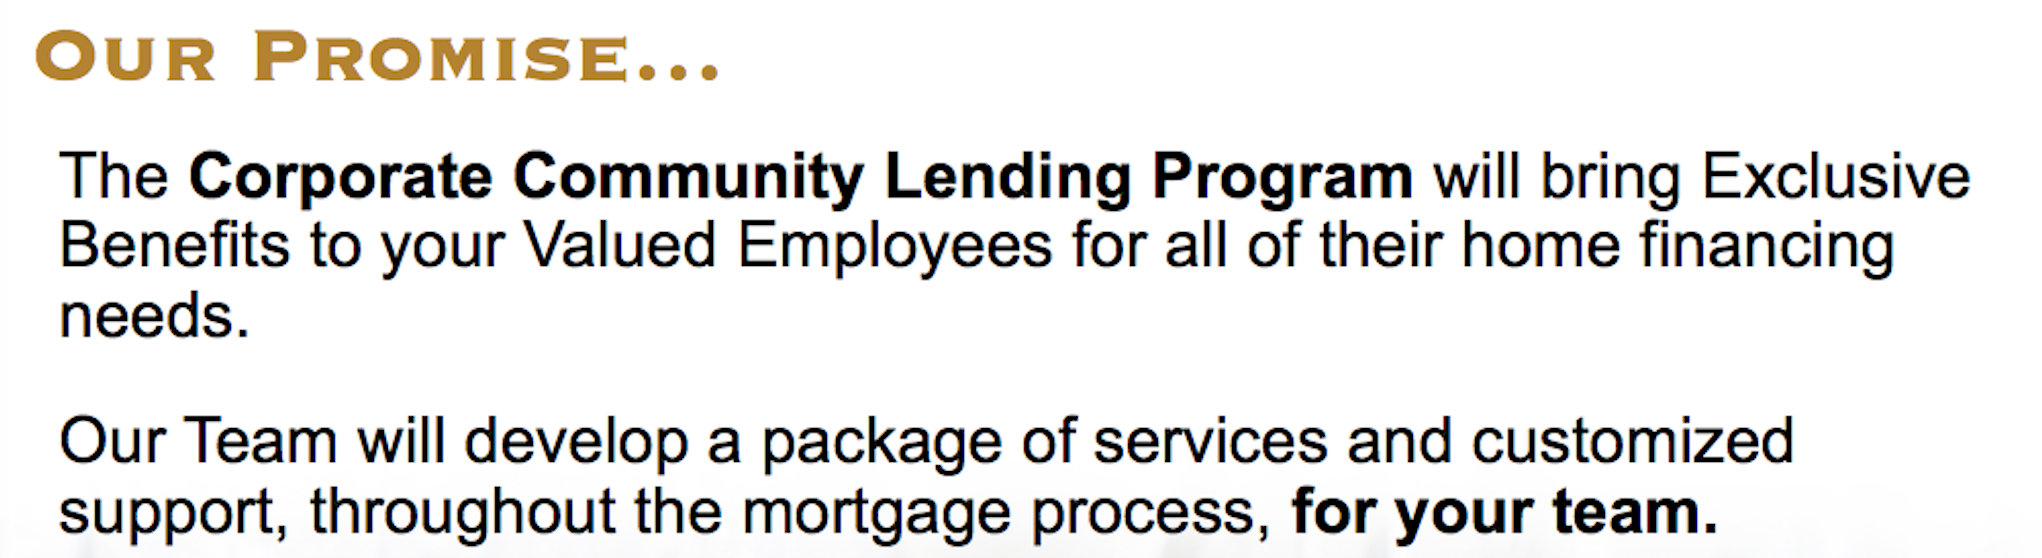 Land Home Financial's Promise to Serve Corporations